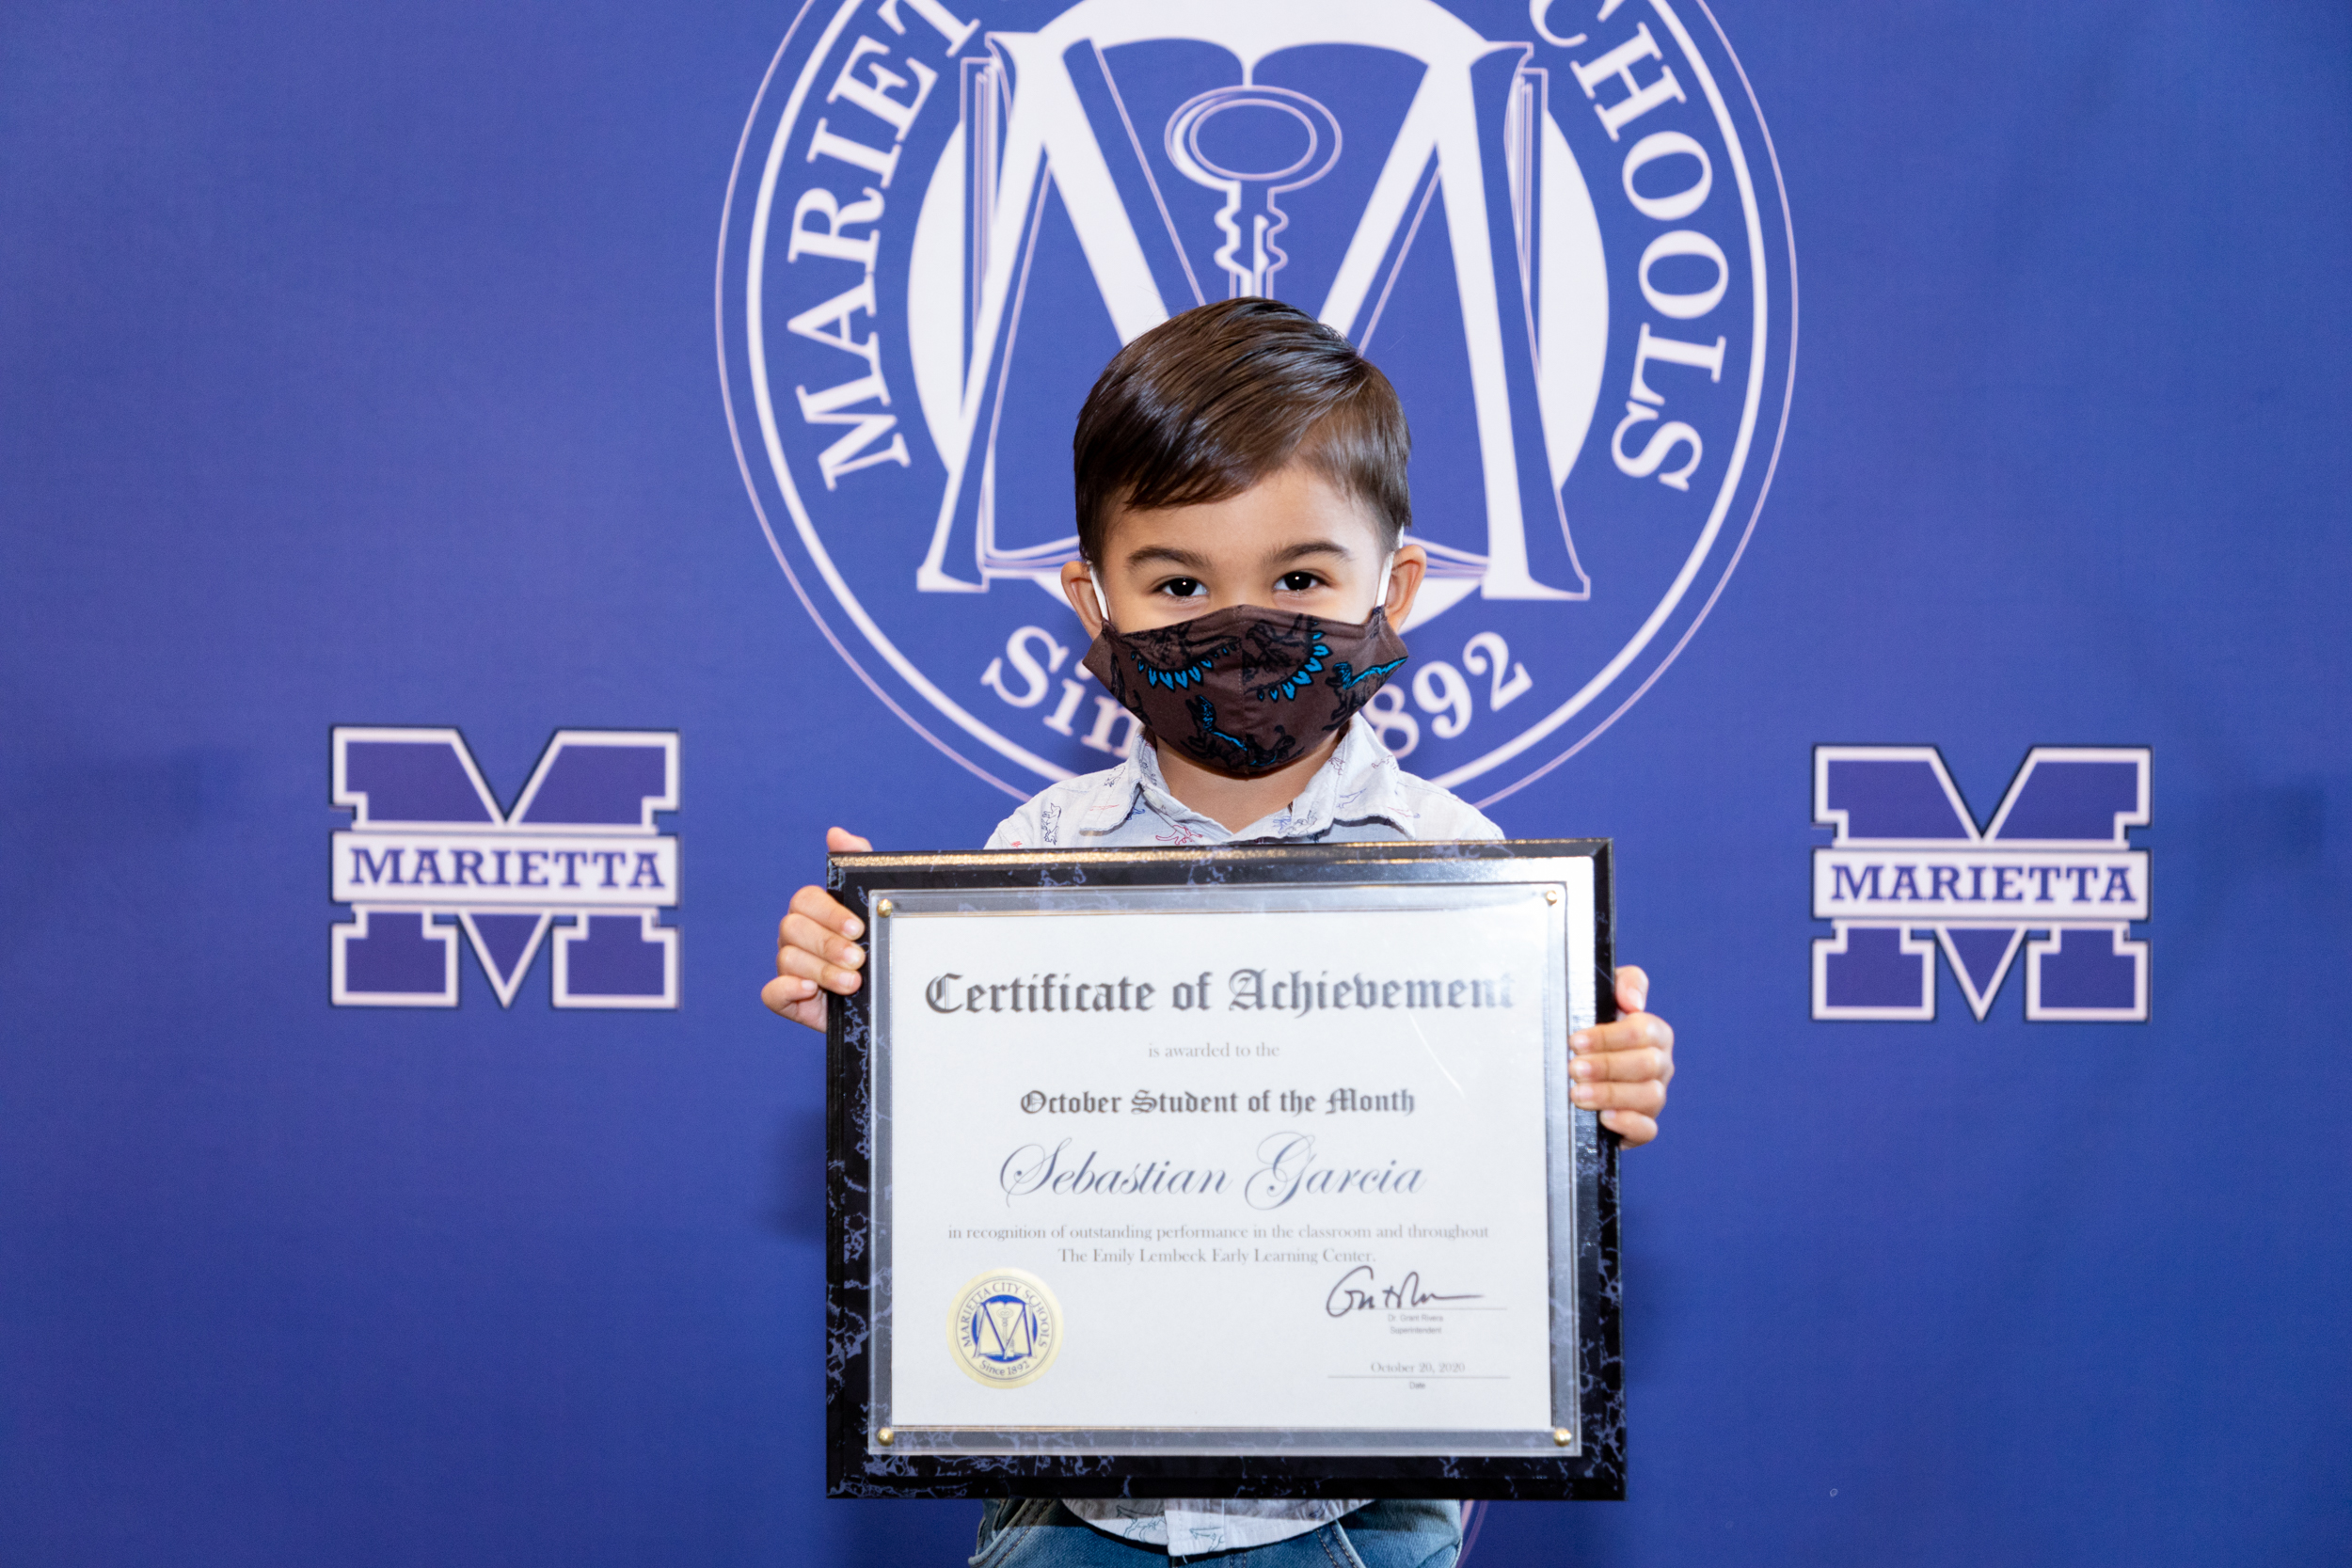 Sebastian Garcia: October Student of the Month